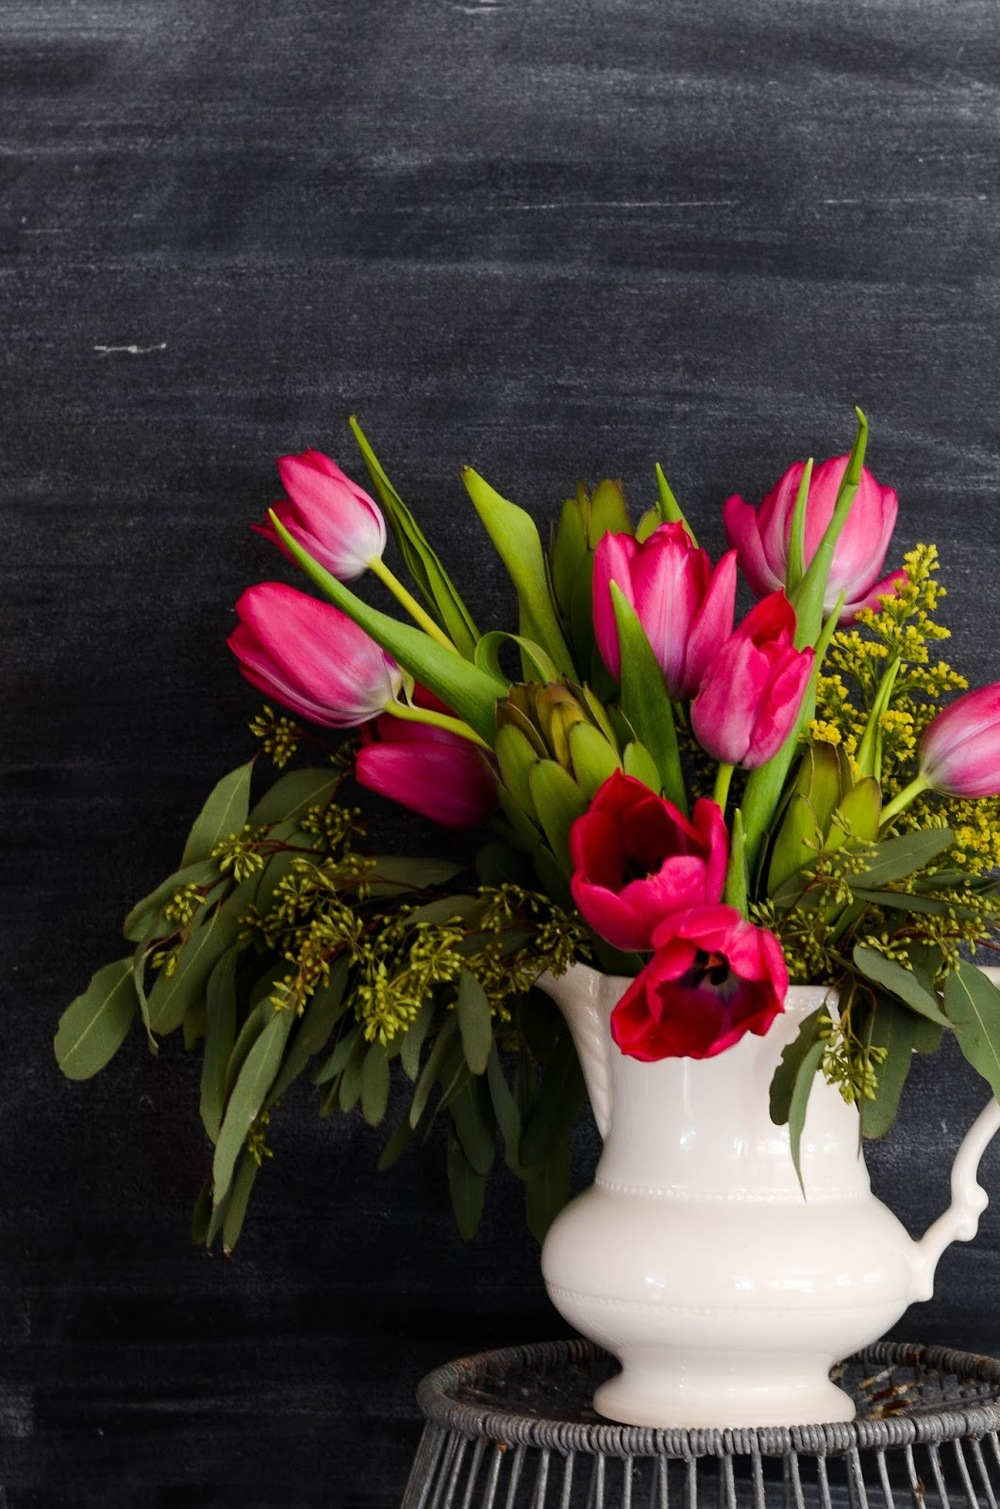 Tulip%2BFloral%2BArrangement%2C%2BGrocery%2BStore%2BFlower%2BArrangement%2B(4).jpg